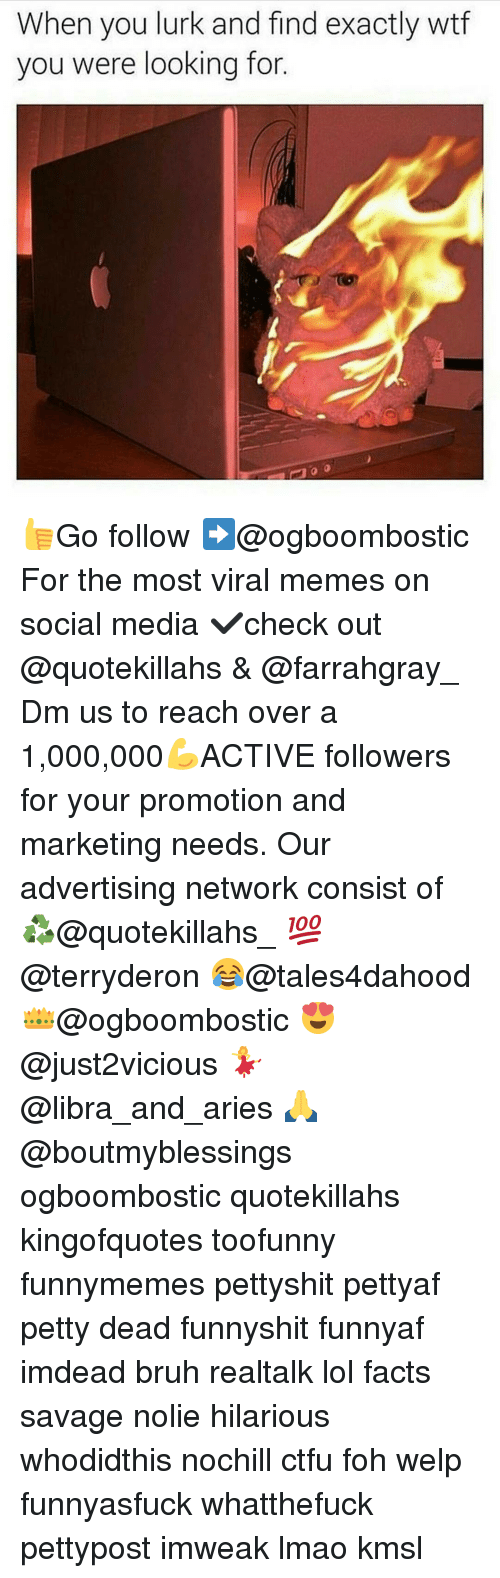 Ctfu, Foh, and Lurking: When you lurk and find exactly wtf  you were looking for 👍Go follow ➡@ogboombostic For the most viral memes on social media ✔check out @quotekillahs & @farrahgray_ Dm us to reach over a 1,000,000💪ACTIVE followers for your promotion and marketing needs. Our advertising network consist of ♻@quotekillahs_ 💯@terryderon 😂@tales4dahood 👑@ogboombostic 😍@just2vicious 💃@libra_and_aries 🙏@boutmyblessings ogboombostic quotekillahs kingofquotes toofunny funnymemes pettyshit pettyaf petty dead funnyshit funnyaf imdead bruh realtalk lol facts savage nolie hilarious whodidthis nochill ctfu foh welp funnyasfuck whatthefuck pettypost imweak lmao kmsl